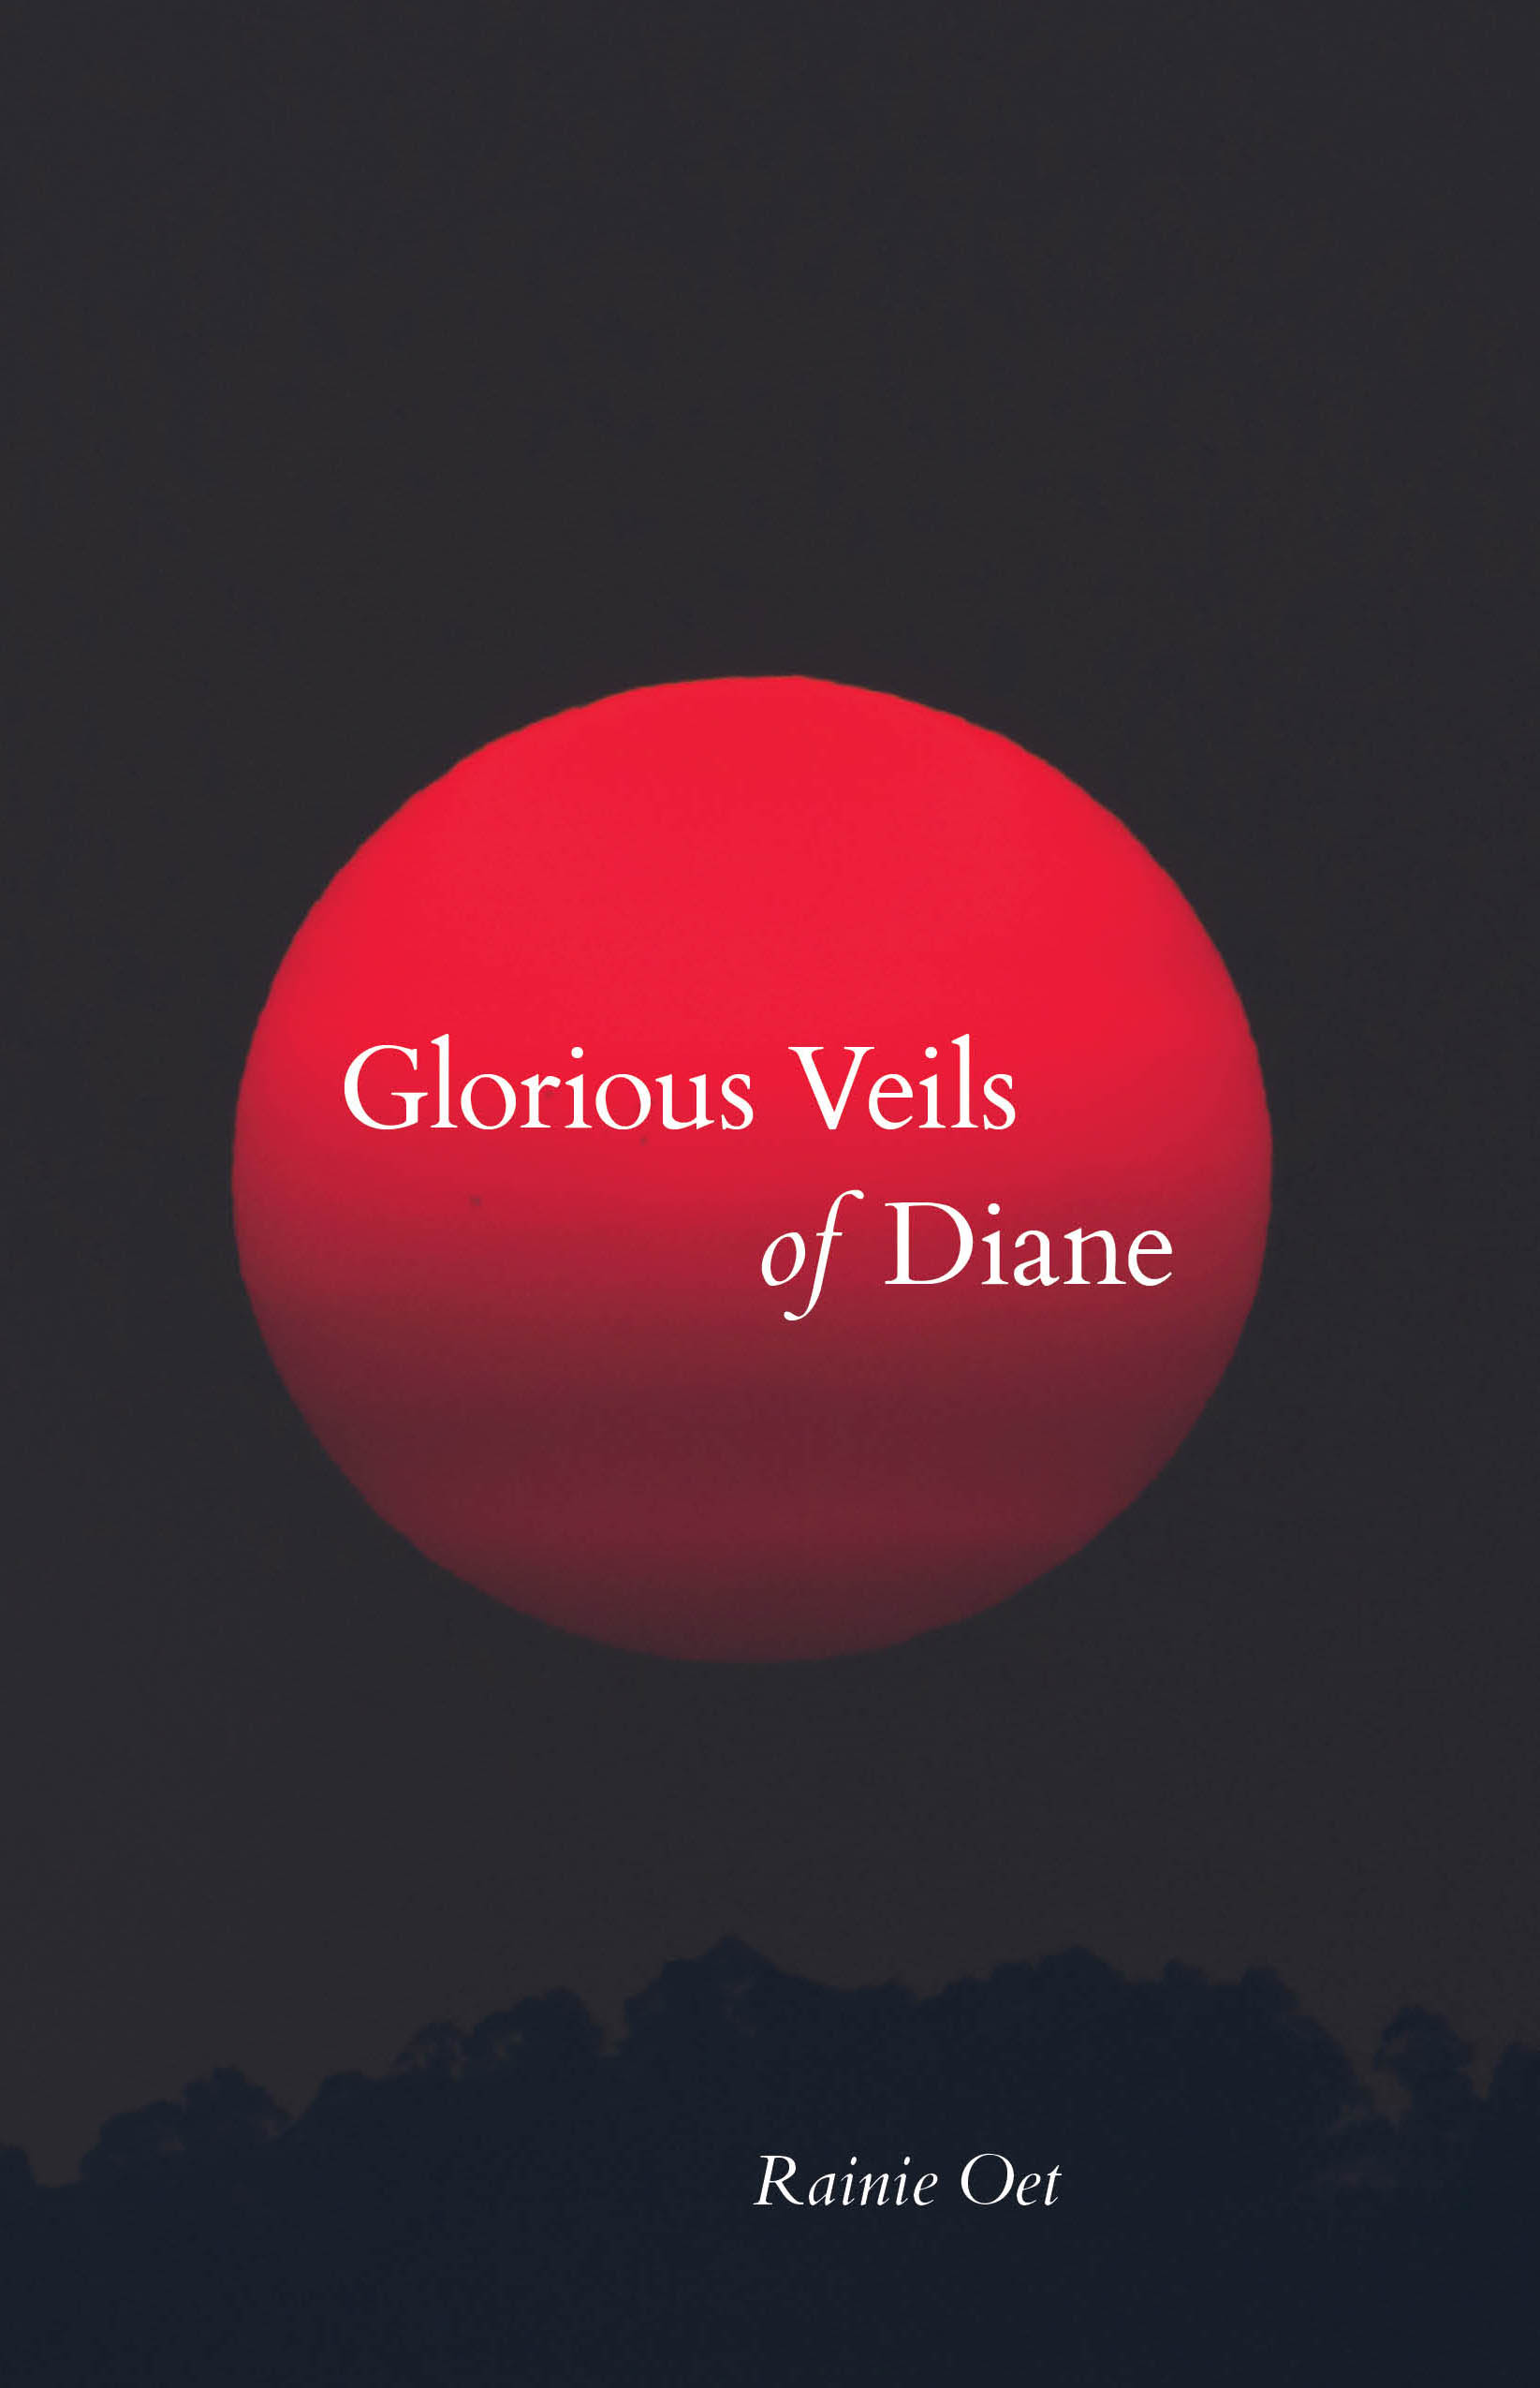 Glorious Veils of Diane